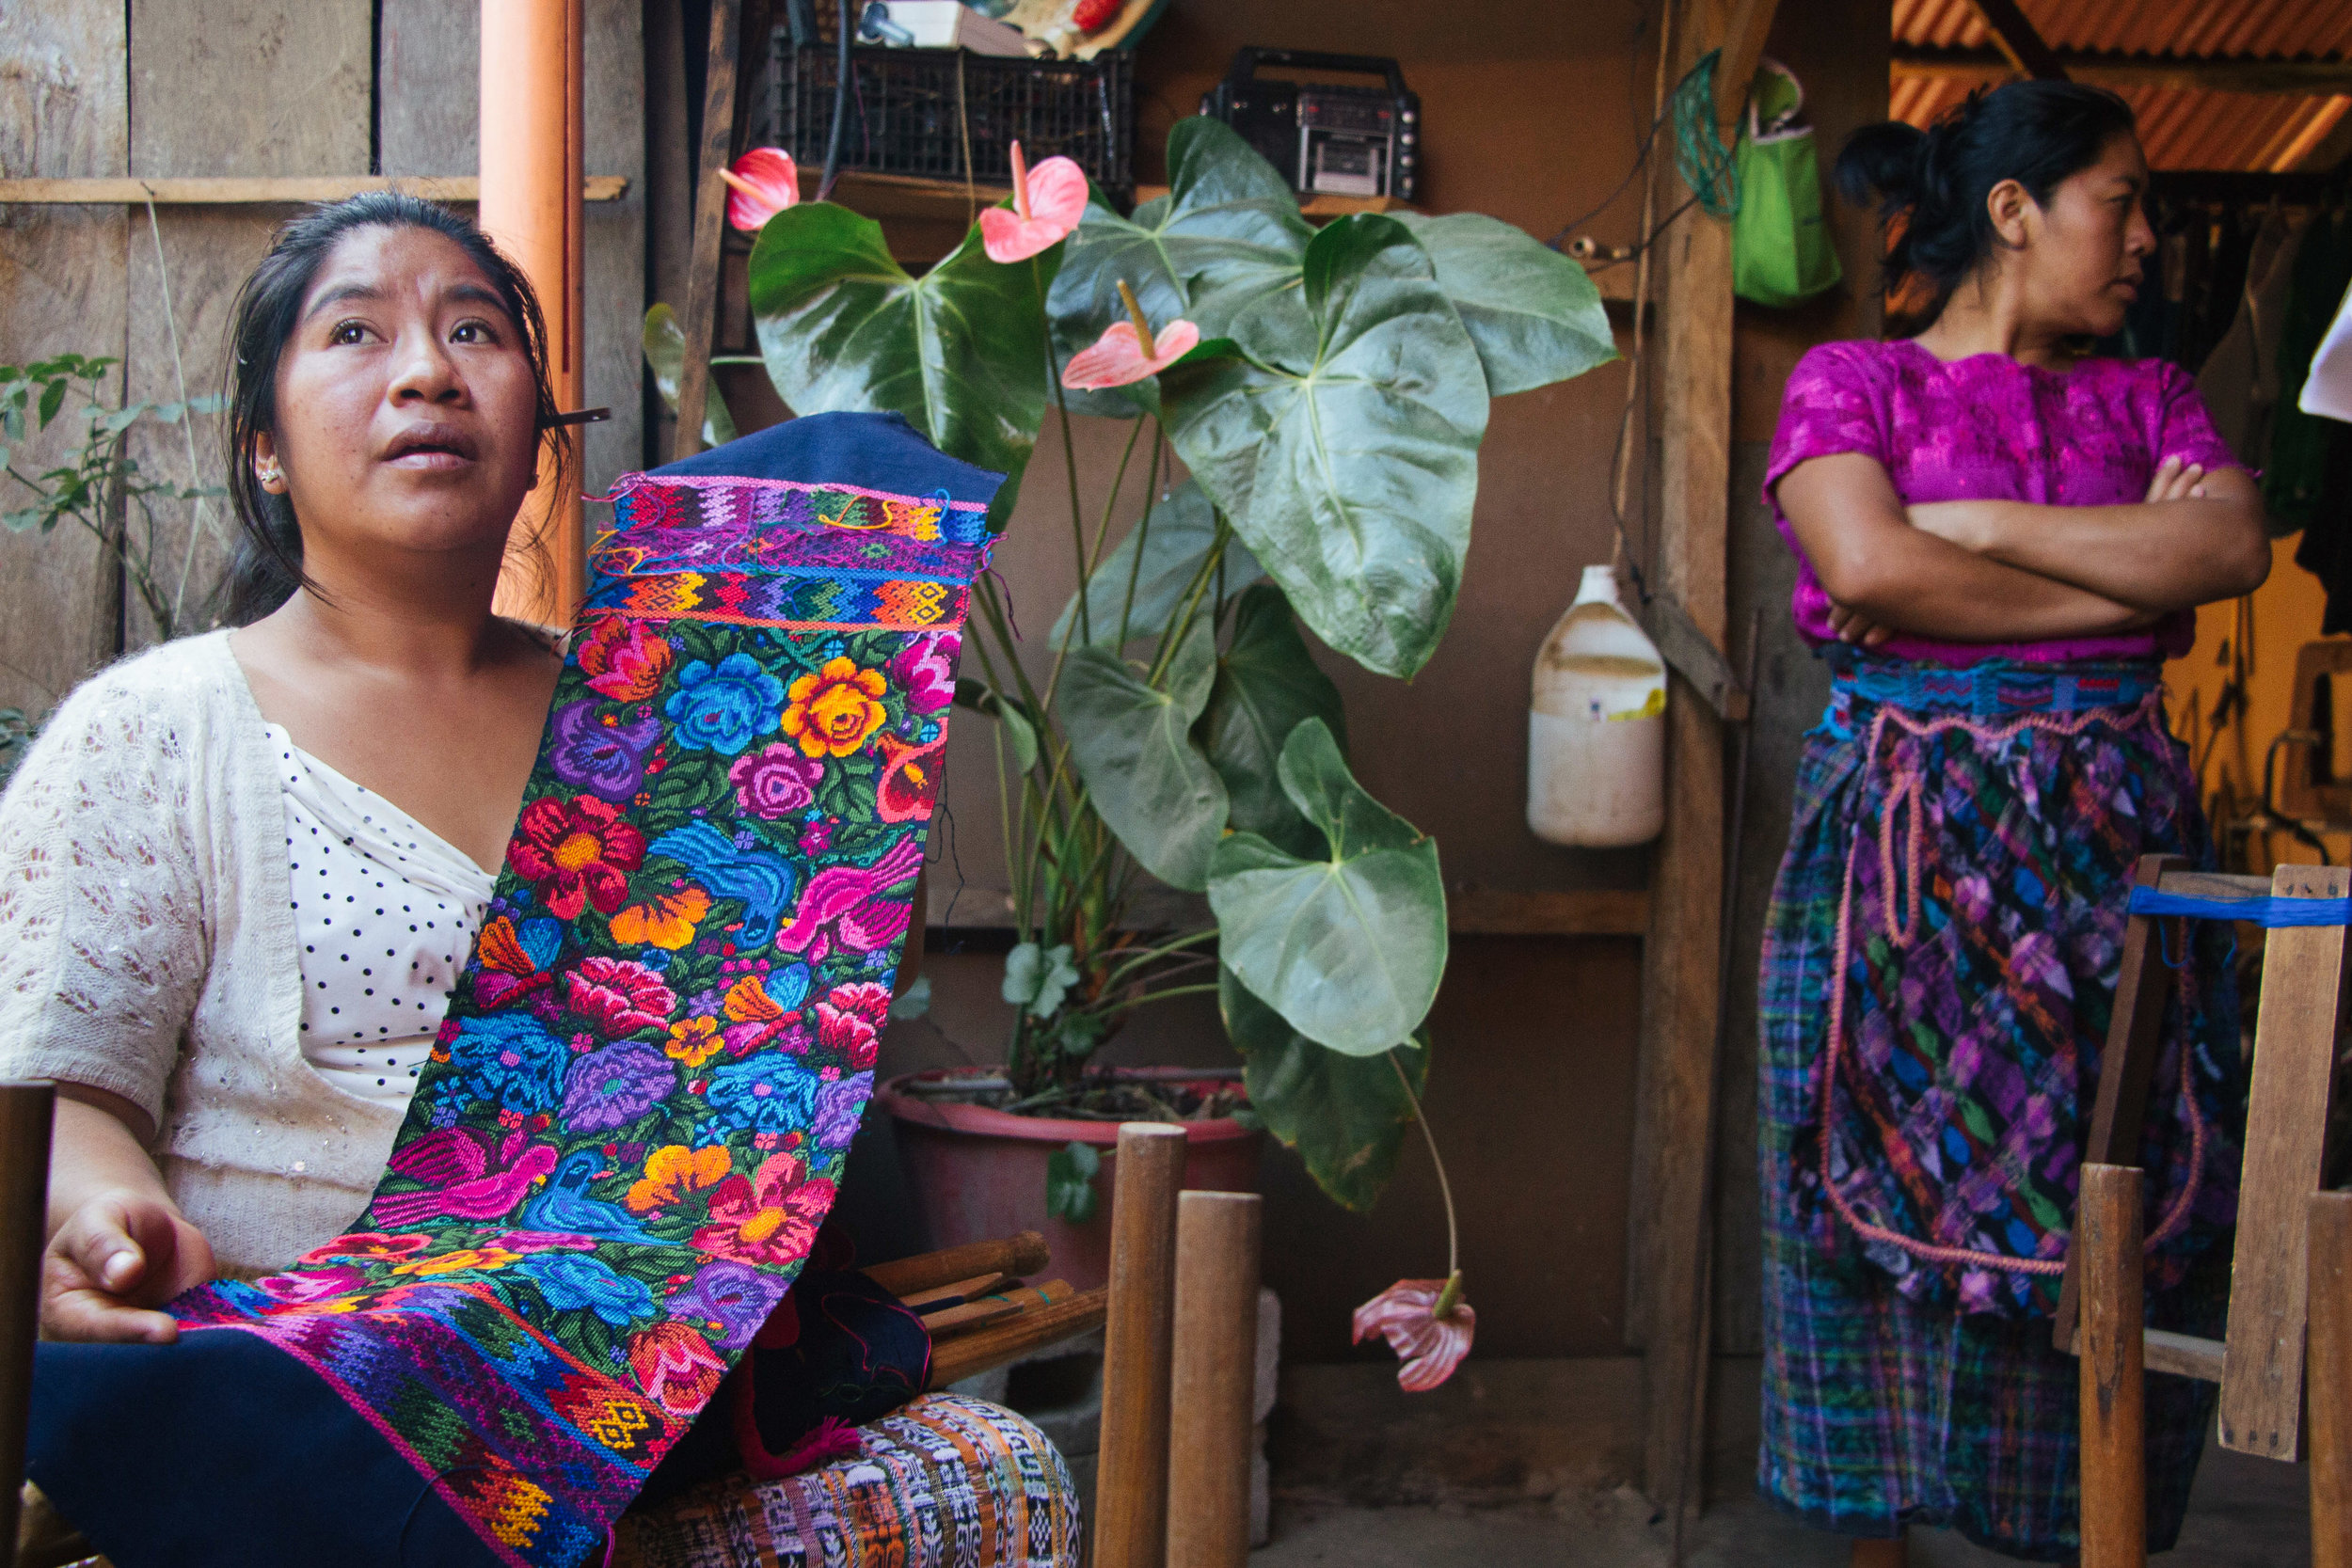 LEIDY AMARILIS MARTINEZ SHOWCASES ONE HER HANDMADE TEXTILES WHILE ESMIDA MAIDE MARTINEZ WATCHES HER MOTHER WEAVE IN THEIR HOME IN SAN ANTONIO AGUAS CALIENTES, GUATEMALA ON JAN. 9. SAN ANTONIO IS KNOWN FOR HUIPILES WOVEN ON BOTH SIDES.